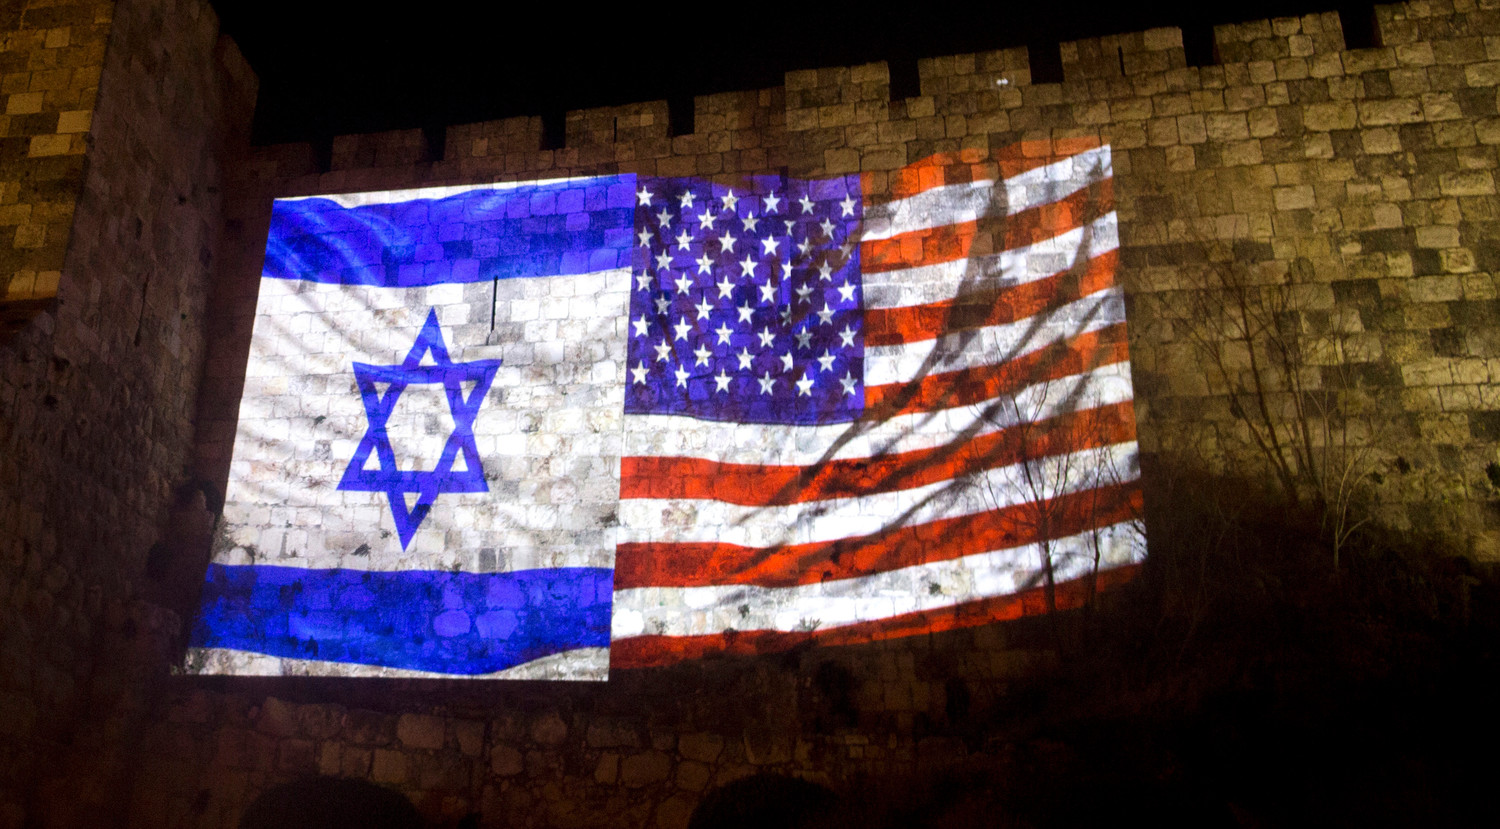 US and Israeli national flags projected on the wall of Jerusalem's Old City on Dec. 6, after President Trump recognized Jerusalem as the capital of Israel in a landmark speech delivered at the White House.